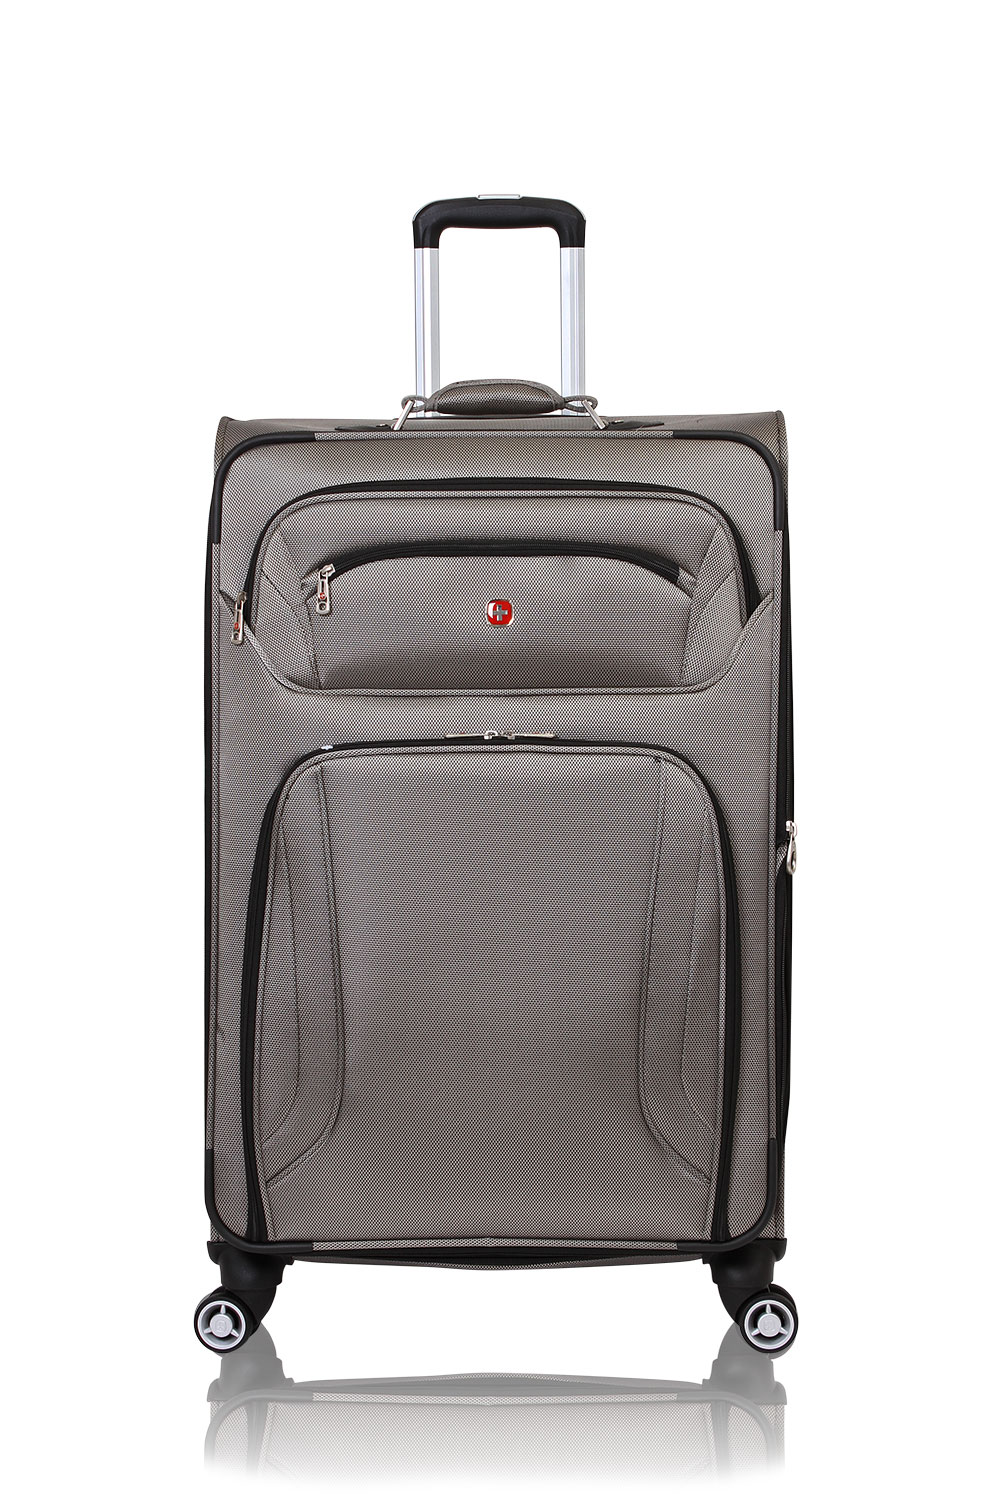 "SWISSGEAR 7895 29"" Expandable Deluxe Spinner - Pewter Luggage"